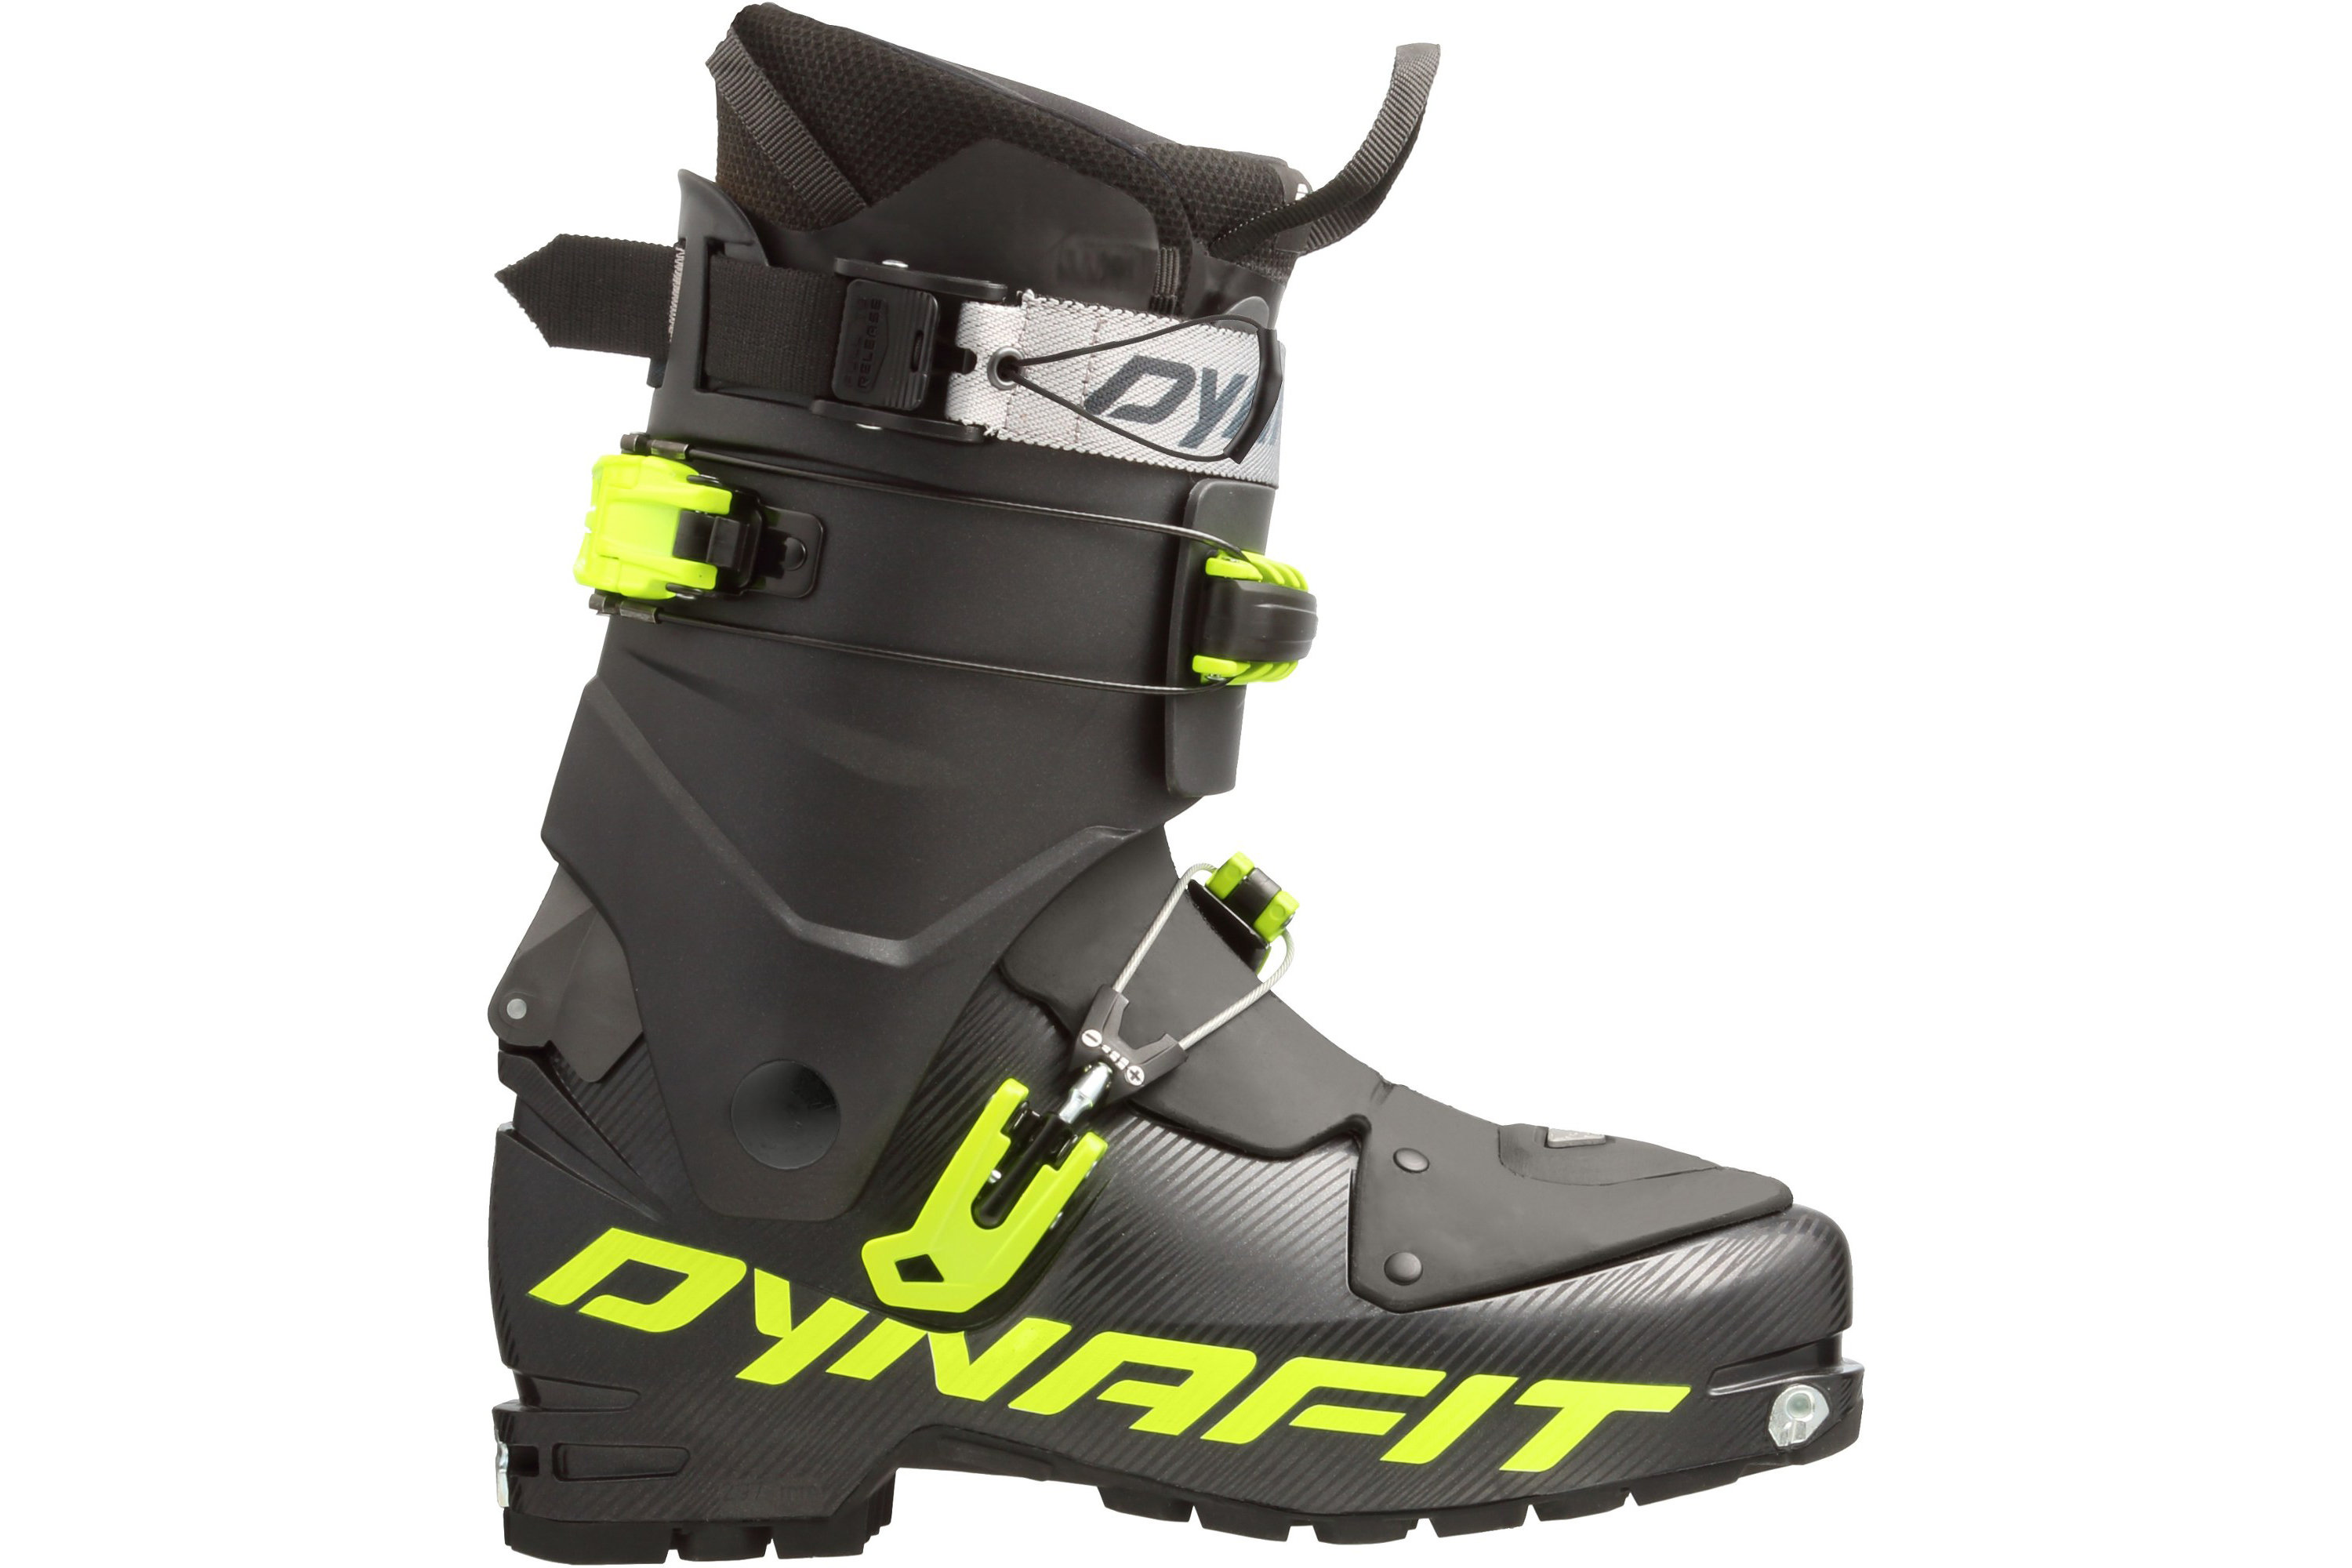 Dynafit Tlt Speedfit Ski Touring Boot Review Good For Ice